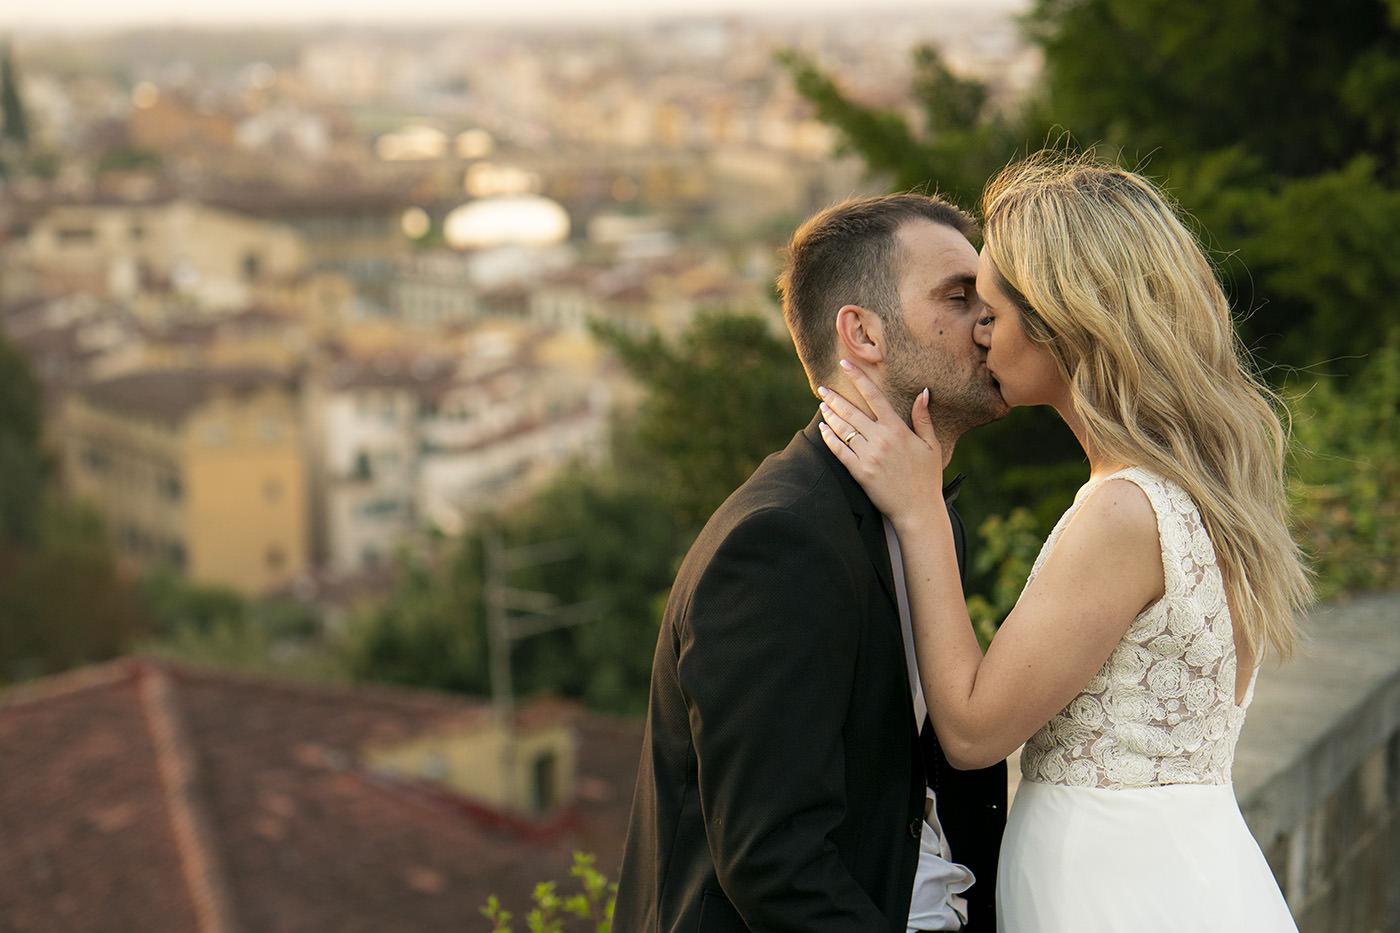 Honeymoon photo session in Florence